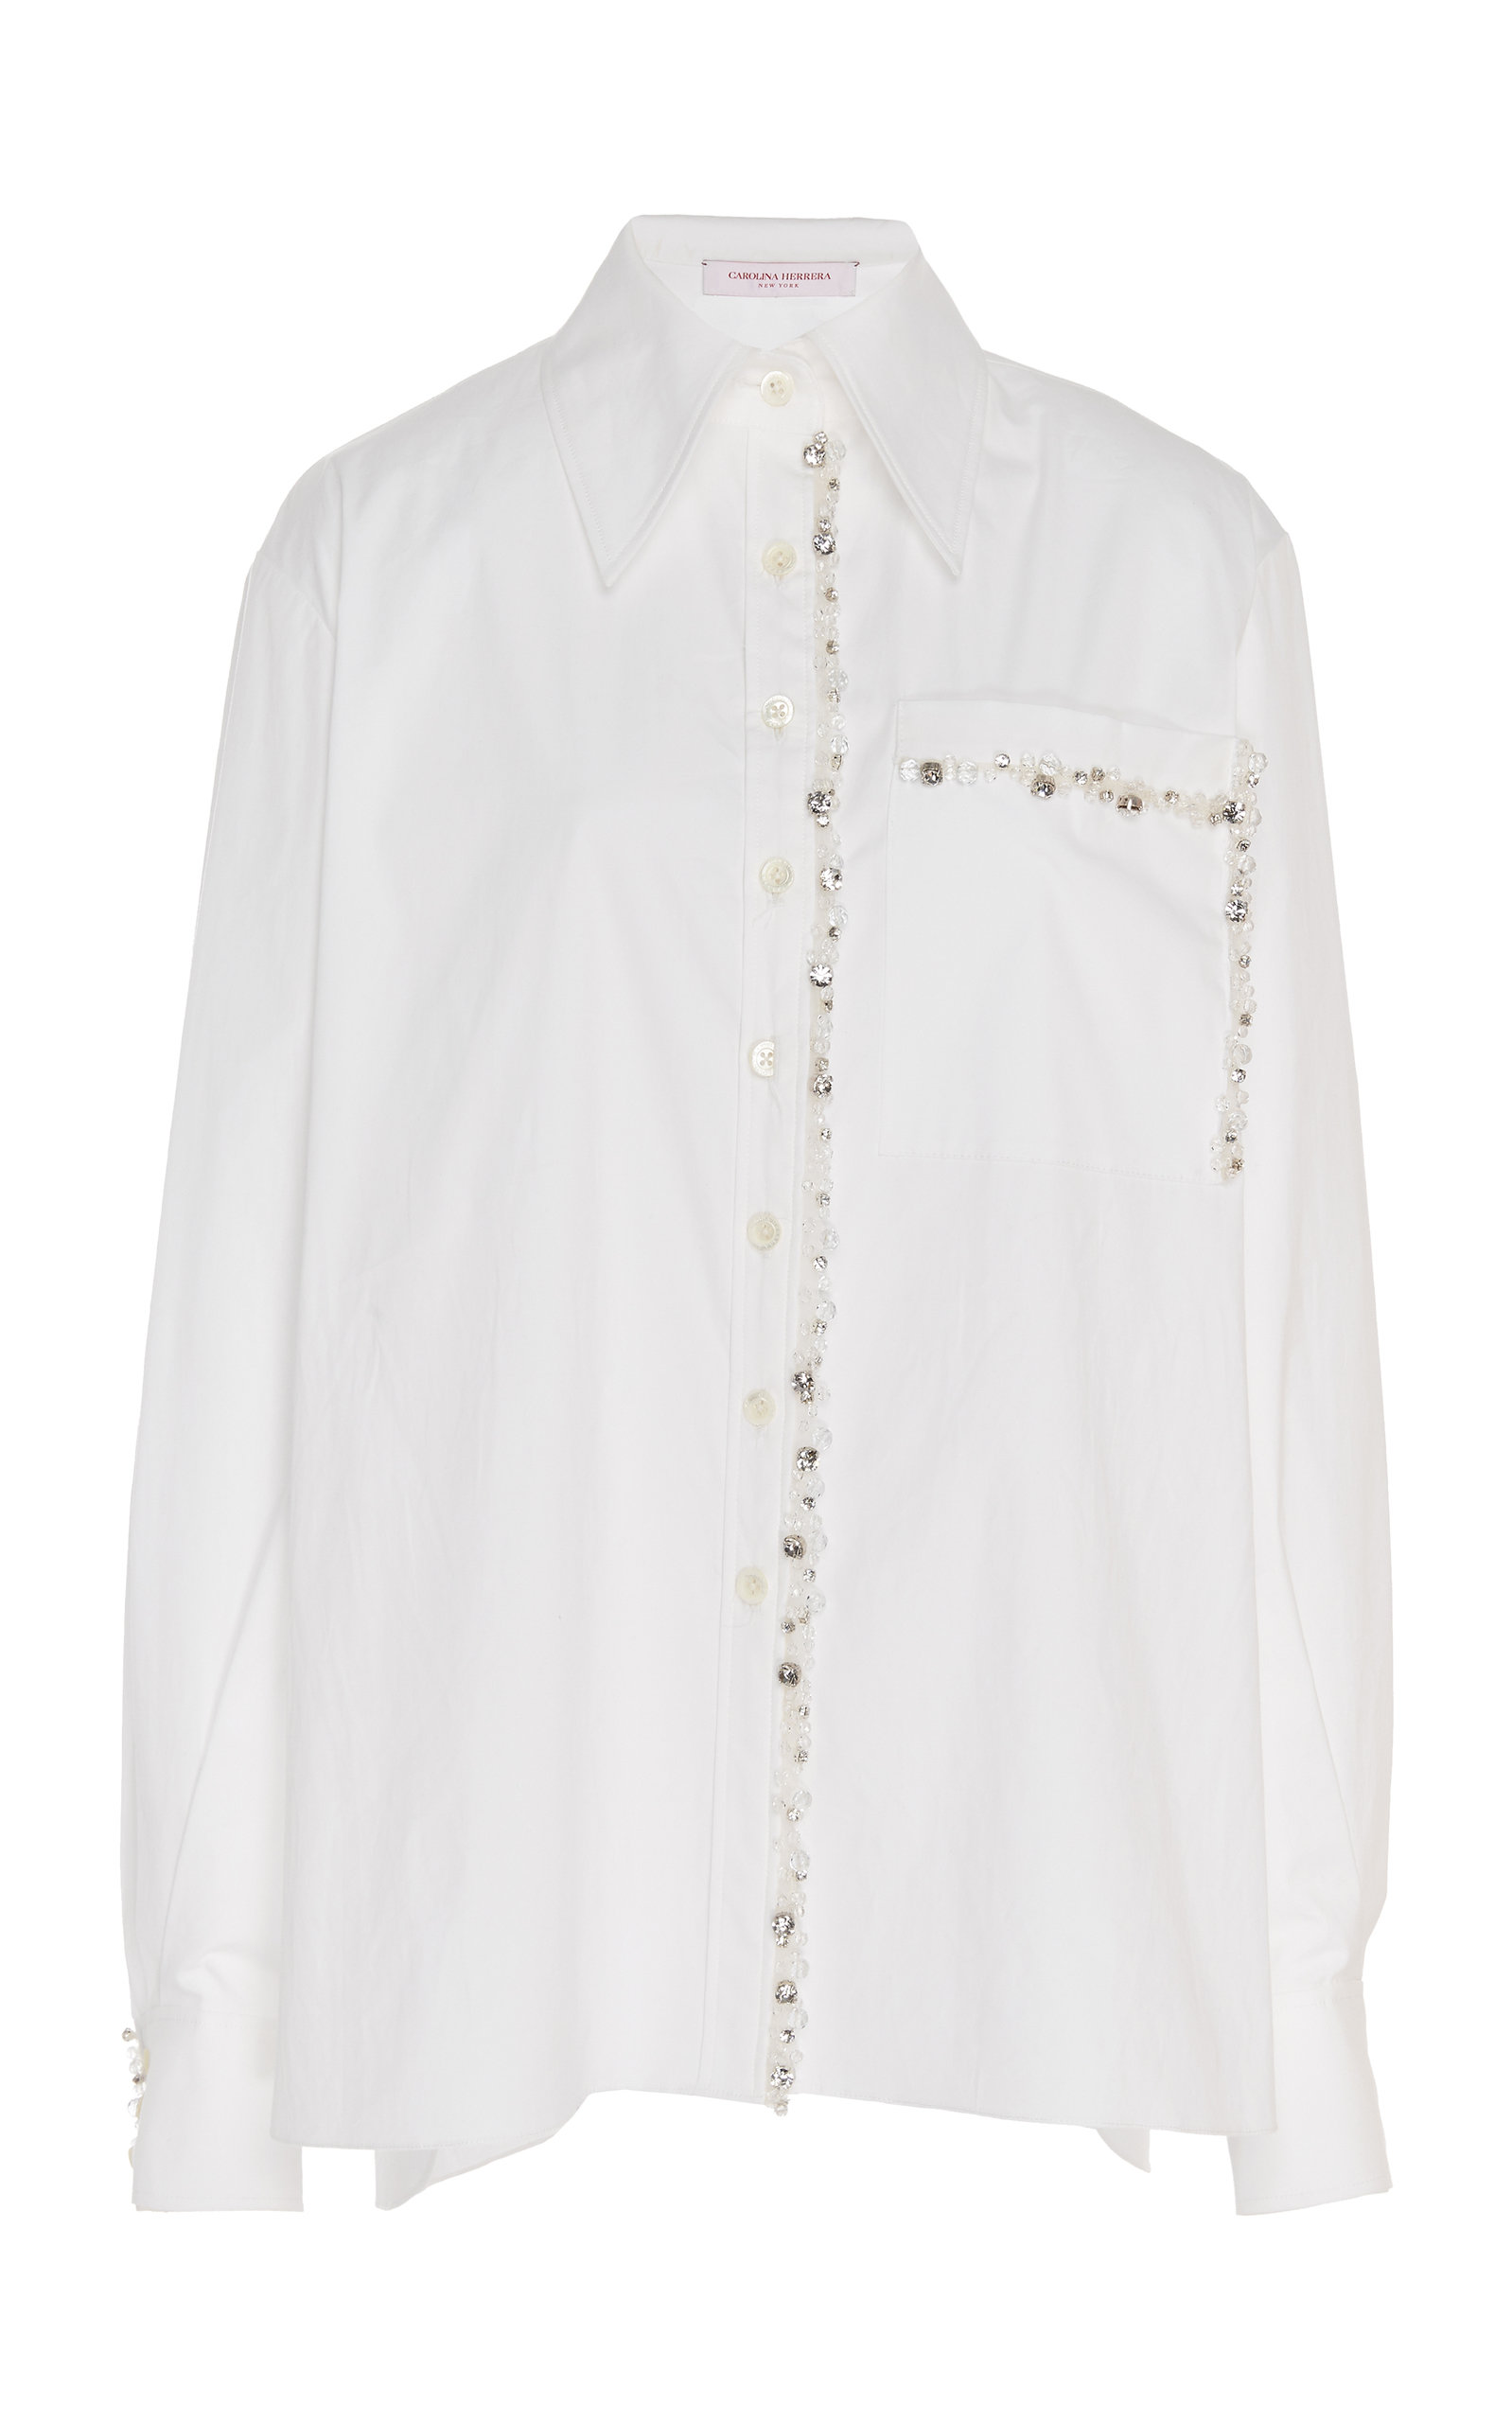 Carolina Herrera LONG SLEEVE COTTON-BLEND SHIRT